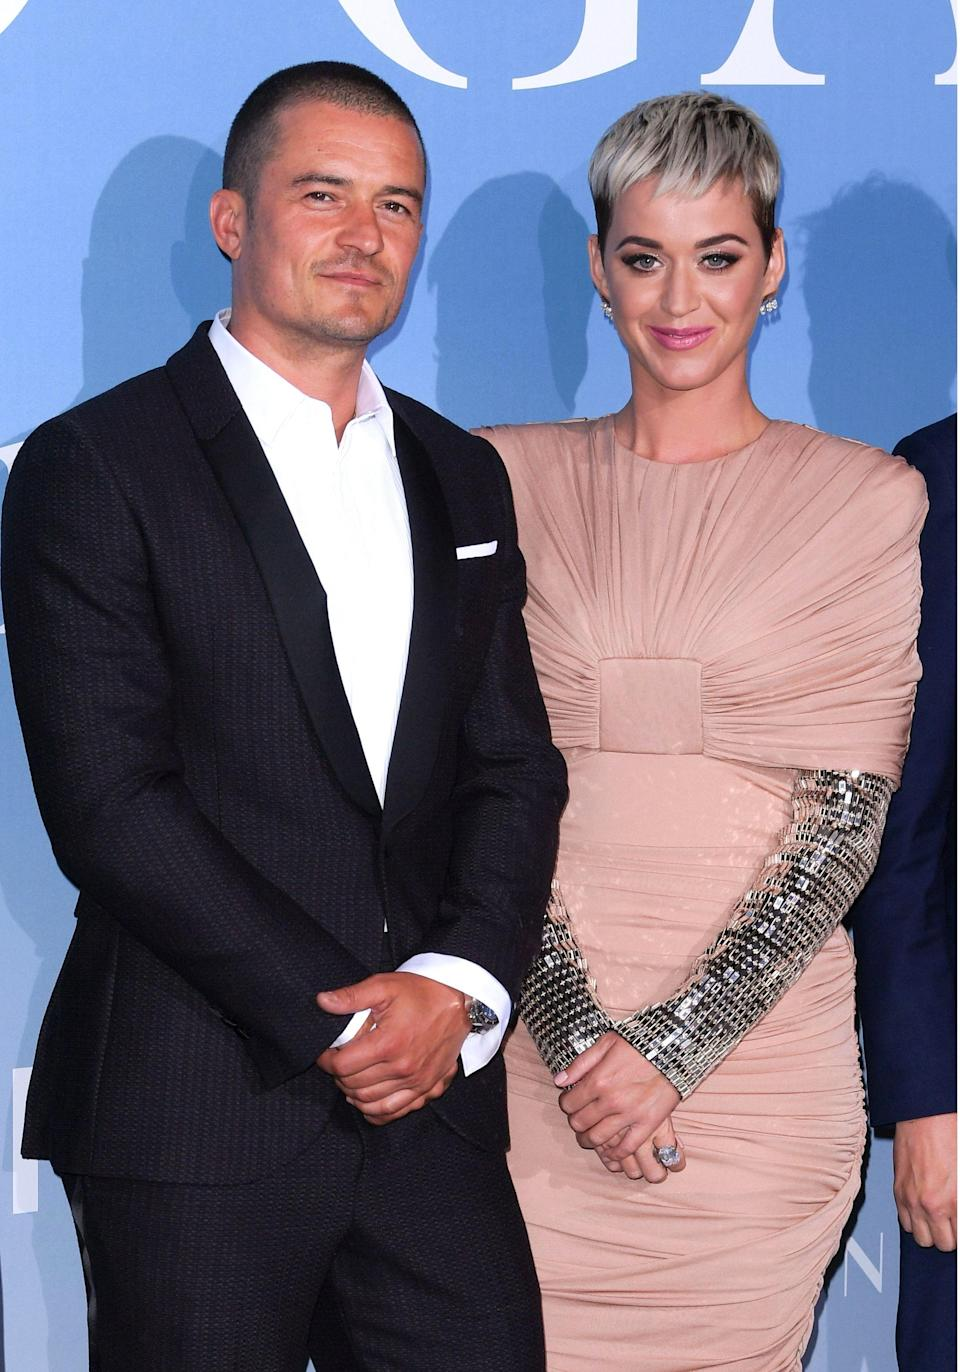 It's the first time Orlando and Katy have shared a red carpet. [Photo: Getty]